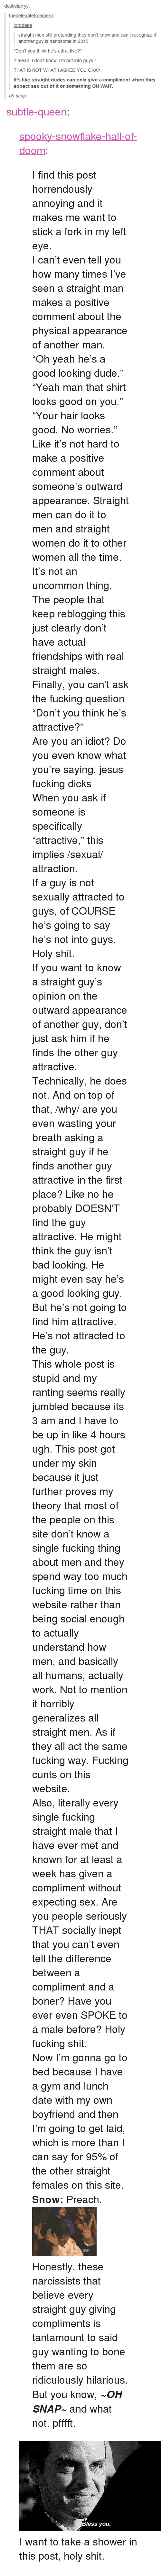 "Fucking Cunts: destielarry  ordbape  straight men still pretending they don't know and can't recognize if  another guy is handsome in 2013  ""Don't you think he's attractive?""  ""I mean, I don't know. I'm not into guys.""  THAT IS NOT WHAT I ASKED YOU OKAY  It's like straight dudes can only give a compliment when they  expect sex out of it or something OH WAIT  oh snap <p><a class=""tumblr_blog"" href=""http://subtle-queen.tumblr.com/post/65442852337/spooky-snowflake-hall-of-doom-i-find-this-post"">subtle-queen</a>:</p> <blockquote> <p><a class=""tumblr_blog"" href=""http://spooky-snowflake-hall-of-doom.tumblr.com/post/65435160187"">spooky-snowflake-hall-of-doom</a>:</p> <blockquote> <p>I find this post horrendously annoying and it makes me want to stick a fork in my left eye.</p> <p>I can't even tell you how many times I've seen a straight man makes a positive comment about the physical appearance of another man.</p> <p>&ldquo;Oh yeah he's a good looking dude.&rdquo;</p> <p>&ldquo;Yeah man that shirt looks good on you.&rdquo;</p> <p>&ldquo;Your hair looks good. No worries.&rdquo;</p> <p>Like it's not hard to make a positive comment about someone's outward appearance. Straight men can do it to men and straight women do it to other women all the time. It's not an uncommon thing. The people that keep reblogging this just clearly don't have actual friendships with real straight males.</p> <p>Finally, you can't ask the fucking question ""Don't you think he's attractive?""</p> <p>Are you an idiot? Do you even know what you're saying. jesus fucking dicks</p> <p>When you ask if someone is specifically ""attractive,"" this implies /sexual/ attraction.</p> <p>If a guy is not sexually attracted to guys, of COURSE he's going to say he's not into guys. Holy shit.</p> <p>If you want to know a straight guy's opinion on the outward appearance of another guy, don't just ask him if he finds the other guy attractive. Technically, he does not. And on top of that, /why/ are you even wasting your breath asking a straight guy if he finds another guy attractive in the first place? Like no he probably DOESN'T find the guy attractive. He might think the guy isn't bad looking. He might even say he's a good looking guy. But he's not going to find him attractive. He's not attracted to the guy.</p> <p>This whole post is stupid and my ranting seems really jumbled because its 3 am and I have to be up in like 4 hours ugh. This post got under my skin because it just further proves my theory that most of the people on this site don't know a single fucking thing about men and they spend way too much fucking time on this website rather than being social enough to actually understand how men, and basically all humans, actually work. Not to mention it horribly generalizes all straight men. As if they all act the same fucking way. Fucking cunts on this website.</p> <p>Also, literally every single fucking straight male that I have ever met and known for at least a week has given a compliment without expecting sex. Are you people seriously THAT socially inept that you can't even tell the difference between a compliment and a boner? Have you ever even SPOKE to a male before? Holy fucking shit.</p> <p>Now I'm gonna go to bed because I have a gym and lunch date with my own boyfriend and then I'm going to get laid, which is more than I can say for 95% of the other straight females on this site.</p> <p><strong>Snow:</strong> Preach.</p> <p><img alt=""image"" src=""https://78.media.tumblr.com/2e149d09a388e6e132d3caf8aa2bfe1a/tumblr_inline_mvf67ecZFU1rbw4b5.gif""/></p> <p>Honestly, these narcissists that believe every straight guy giving compliments is tantamount to said guy wanting to bone them are so ridiculously hilarious.</p> <p>But you know, <em><strong>~OH SNAP~</strong></em> and what not. pfffft.</p> </blockquote> <p><img alt="""" src=""https://78.media.tumblr.com/95a0fbcf9e70c39aafb47321c651bee4/tumblr_inline_mnrt8fENrN1qz4rgp.gif""/></p> <p>I want to take a shower in this post, holy shit.</p> </blockquote>"